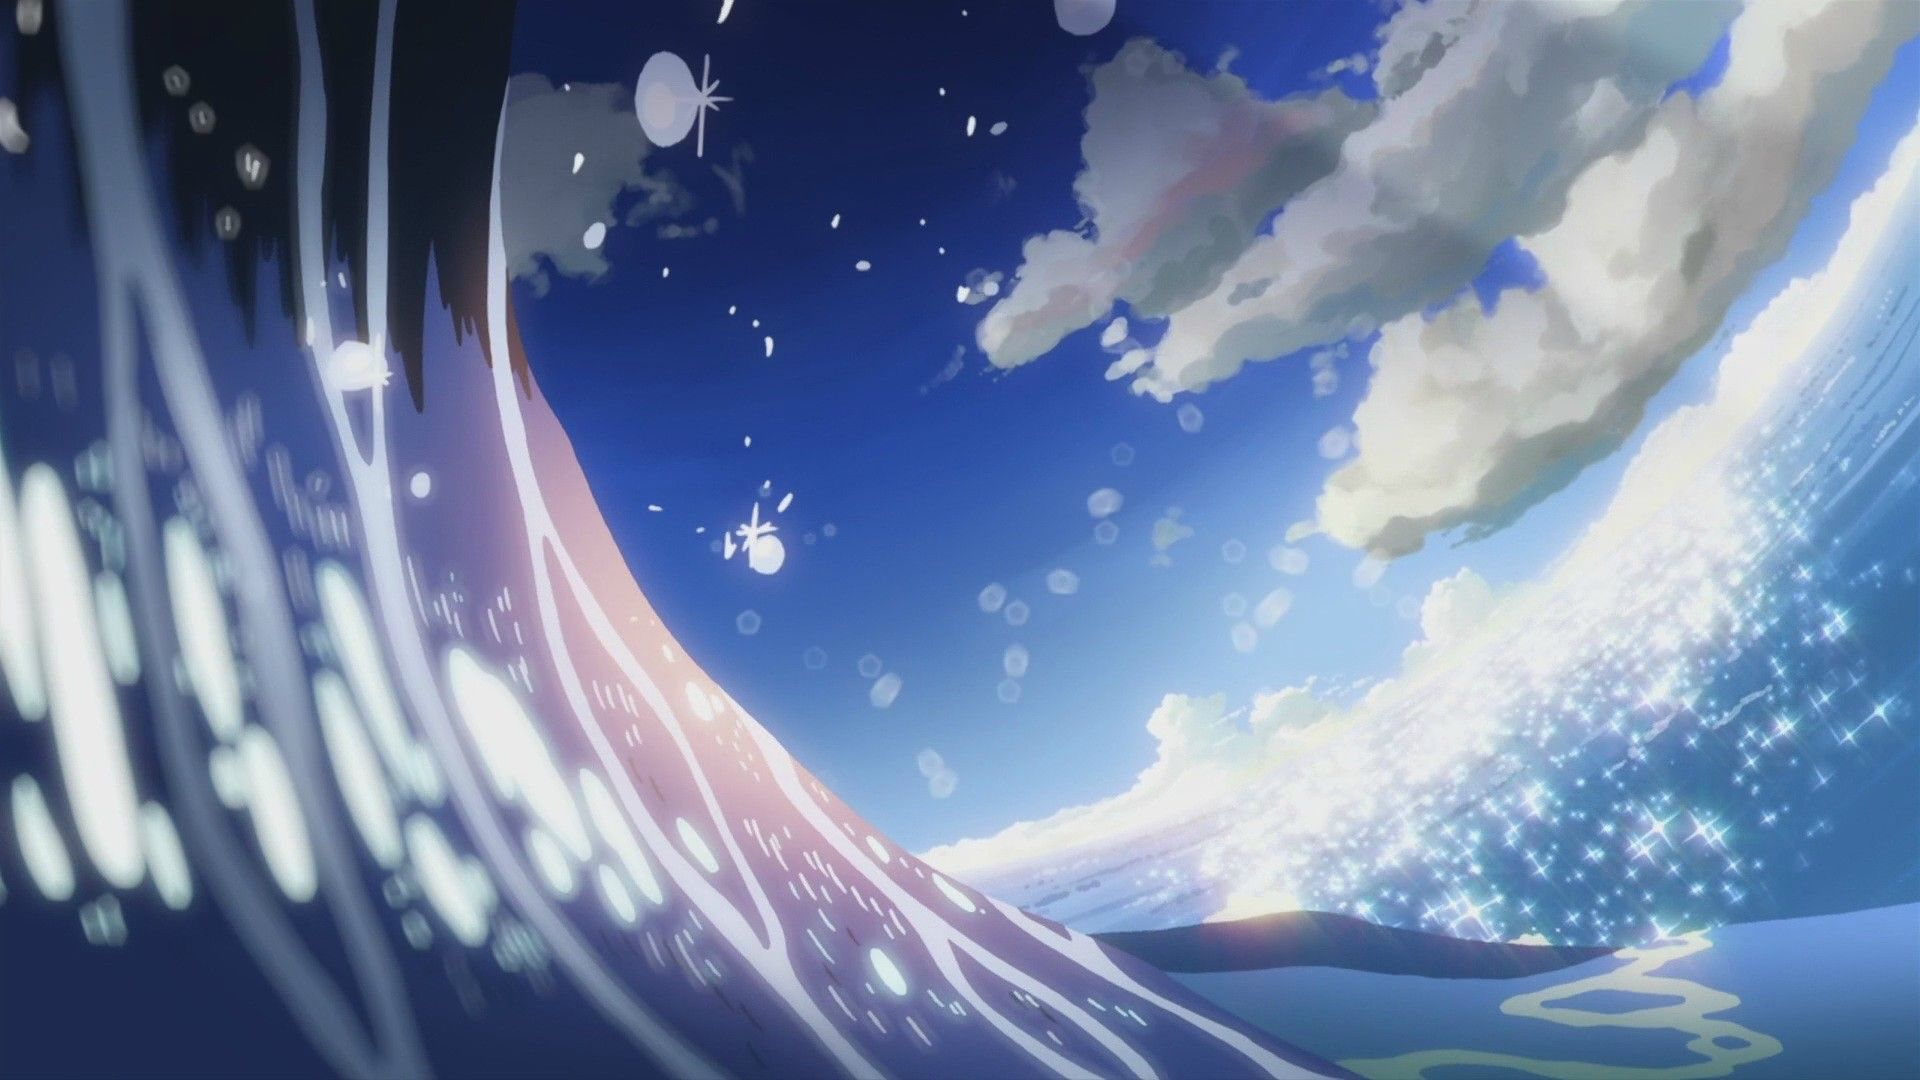 anime backgrounds - hd wallpapers backgrounds of your choice | anime